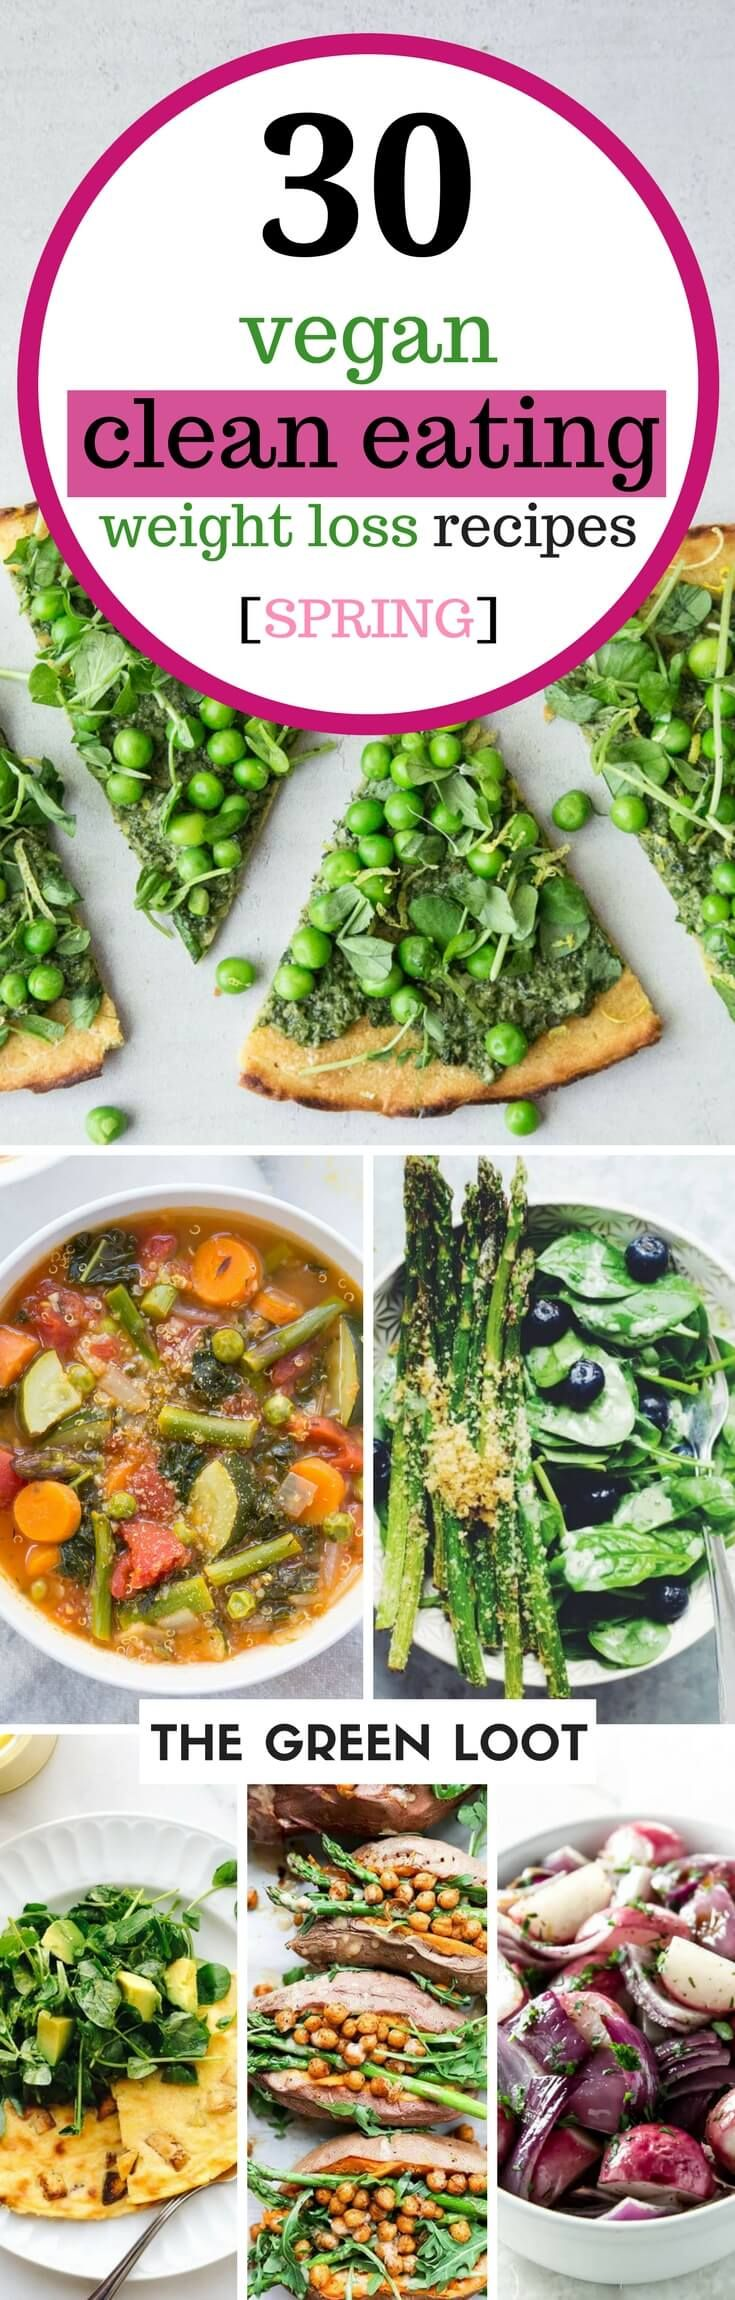 Make these winner vegan clean eating weight loss recipes for Spring, that make amazing seasonal dinners. Get the recipes to detox, burn fat and lose weight while eating delicious food. Spring cleaning means cooking healthy meals too! | The Green Loot #vegan #cleaneating #weightloss